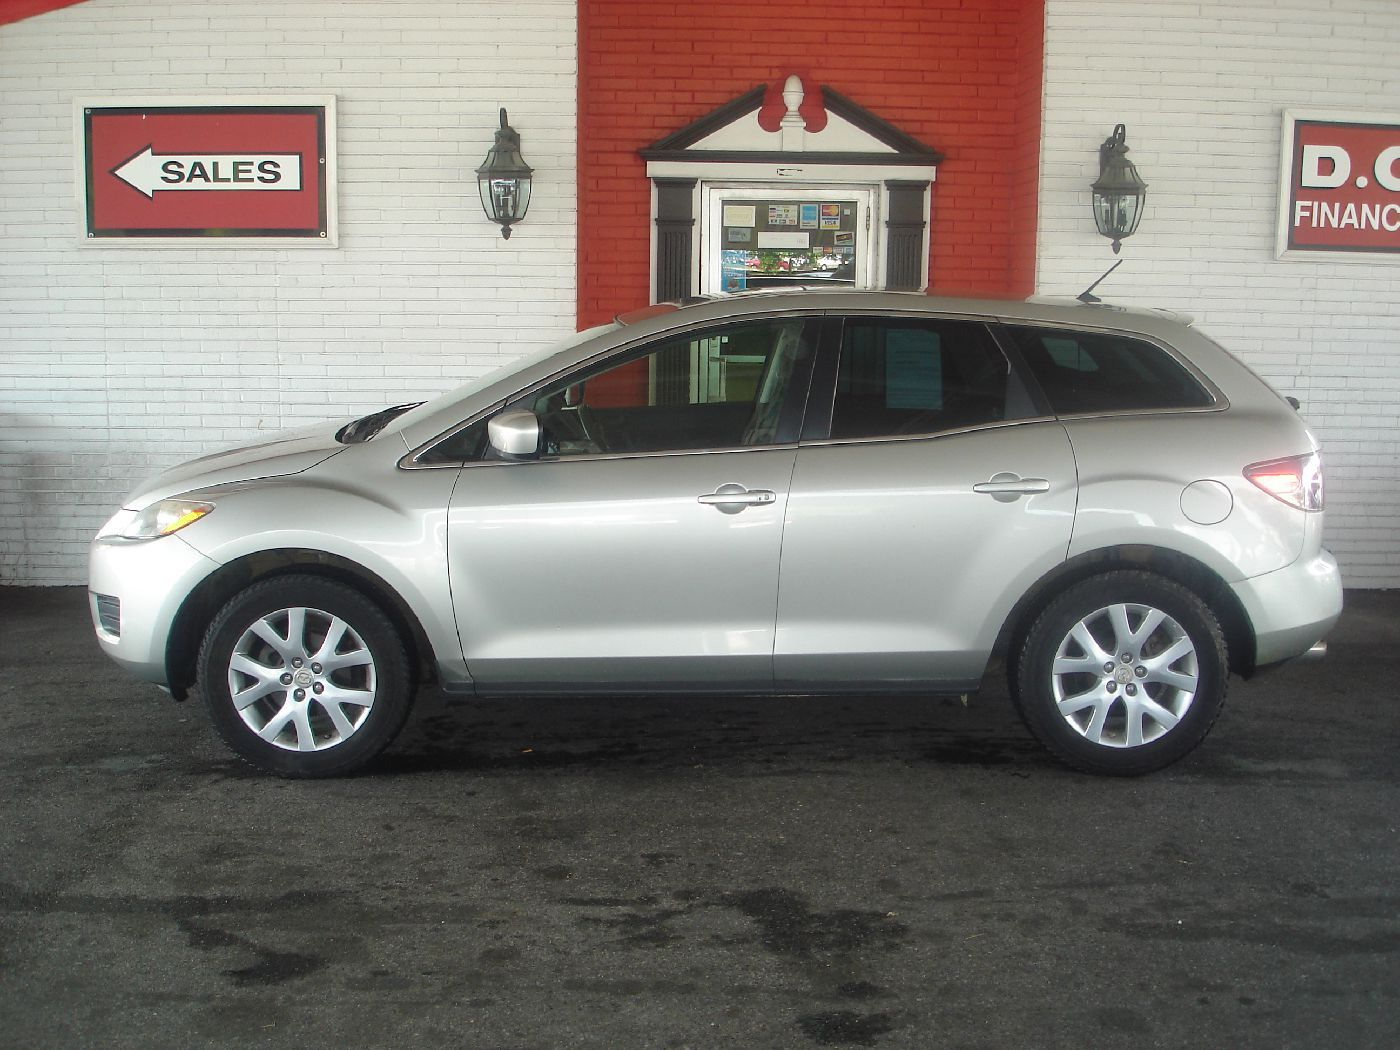 2007 Mazda CX-7 -Used Auto Deals On Wheels -